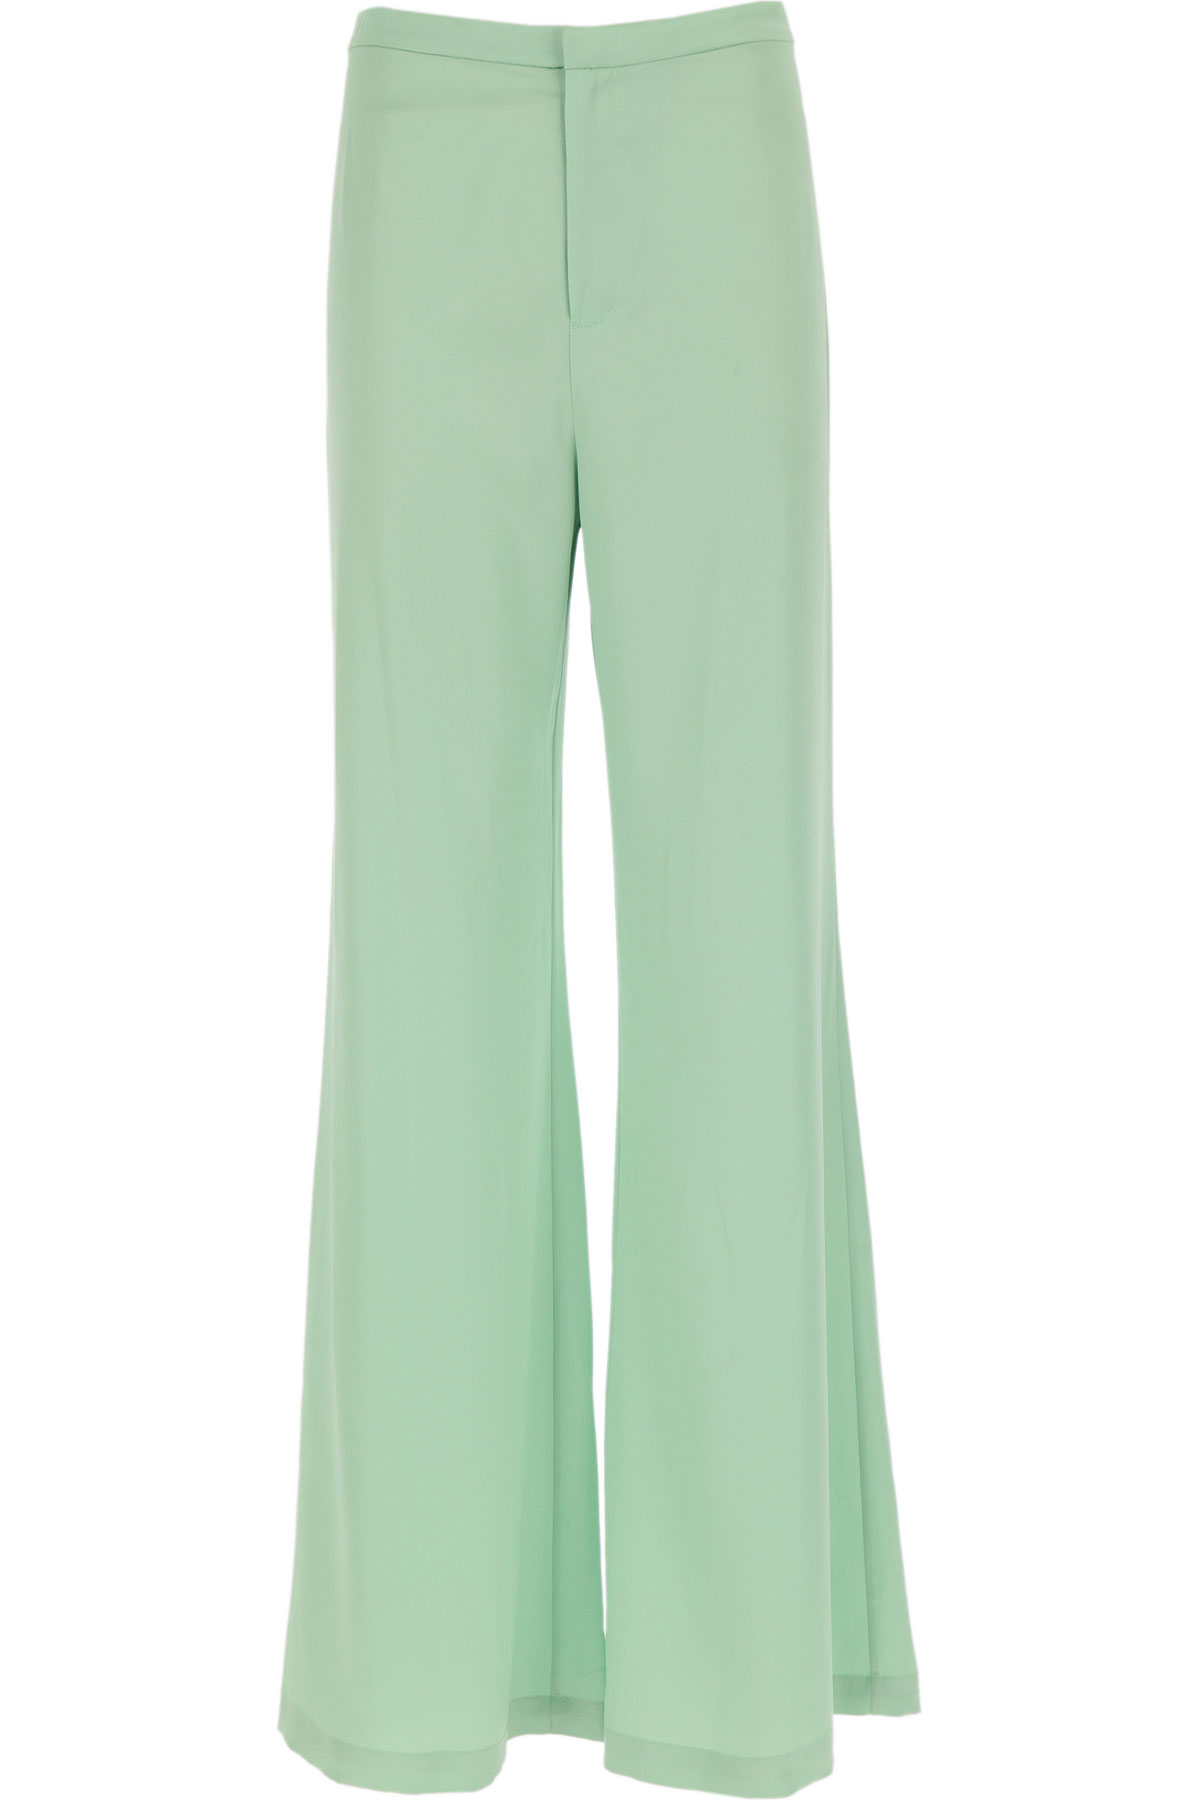 Alexander Wang Pants for Women On Sale, Mint, Triacetate, 2019, 4 6